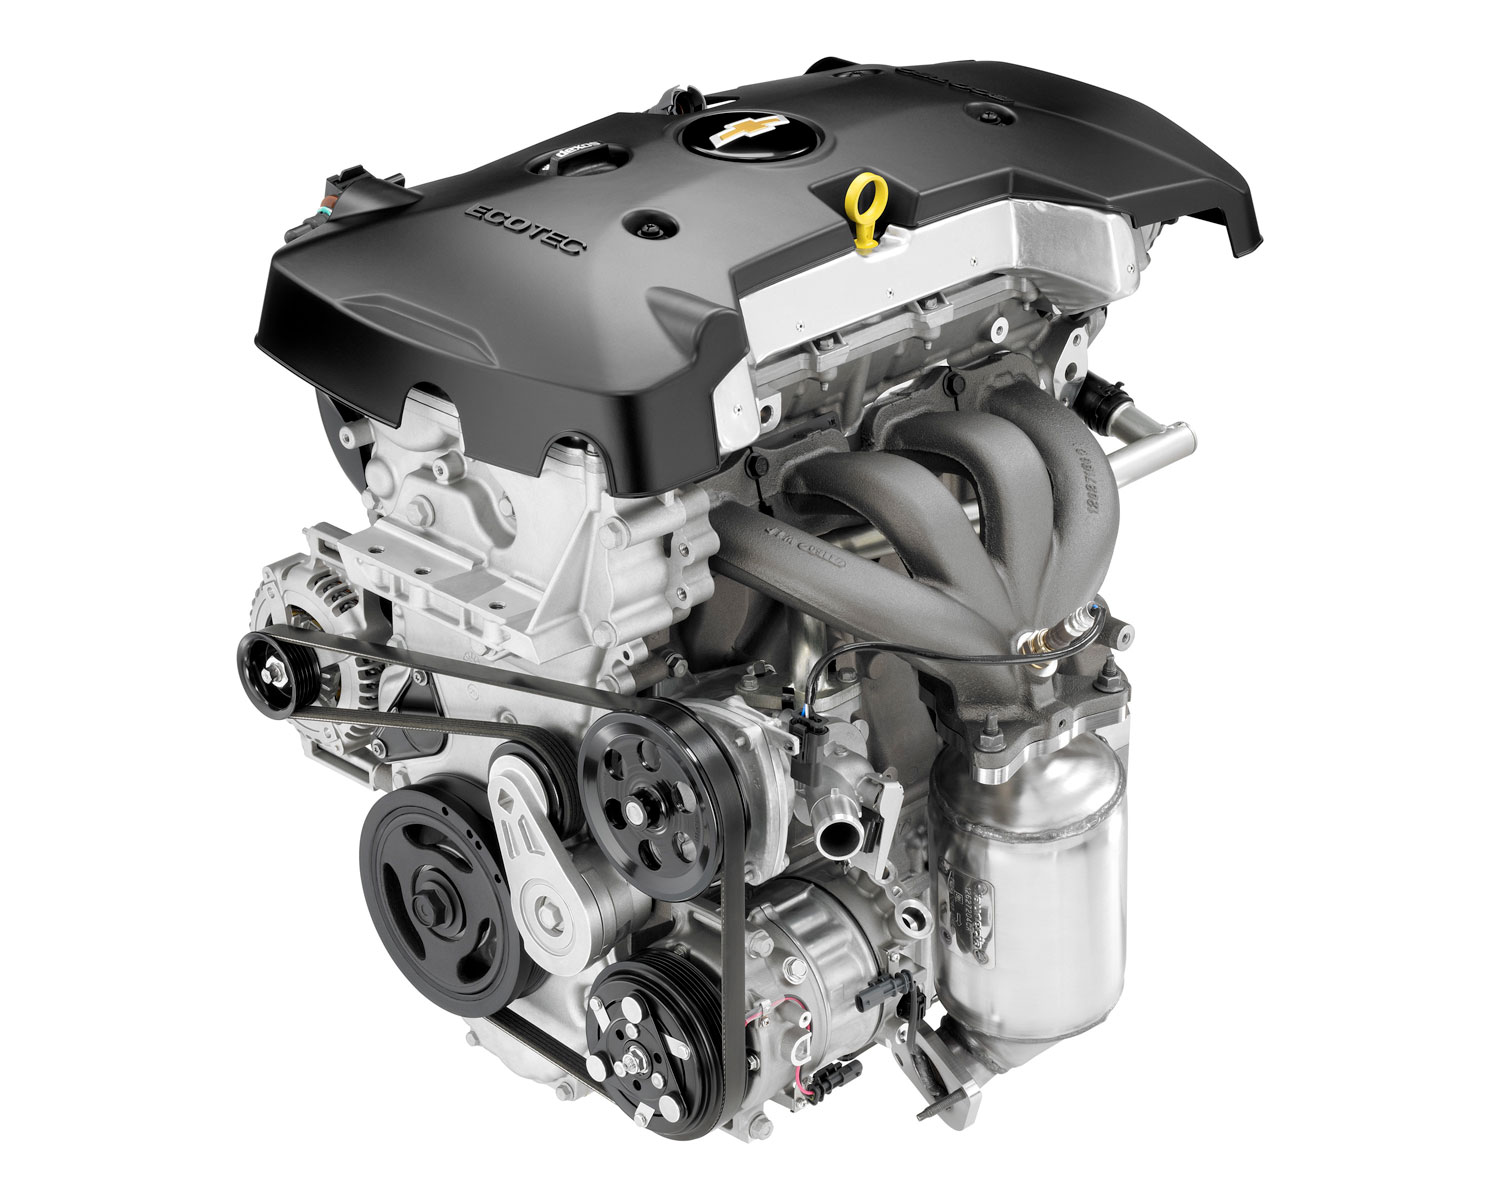 2013 Chevrolet Malibu to Feature All-New 2.5-Liter Ecotec